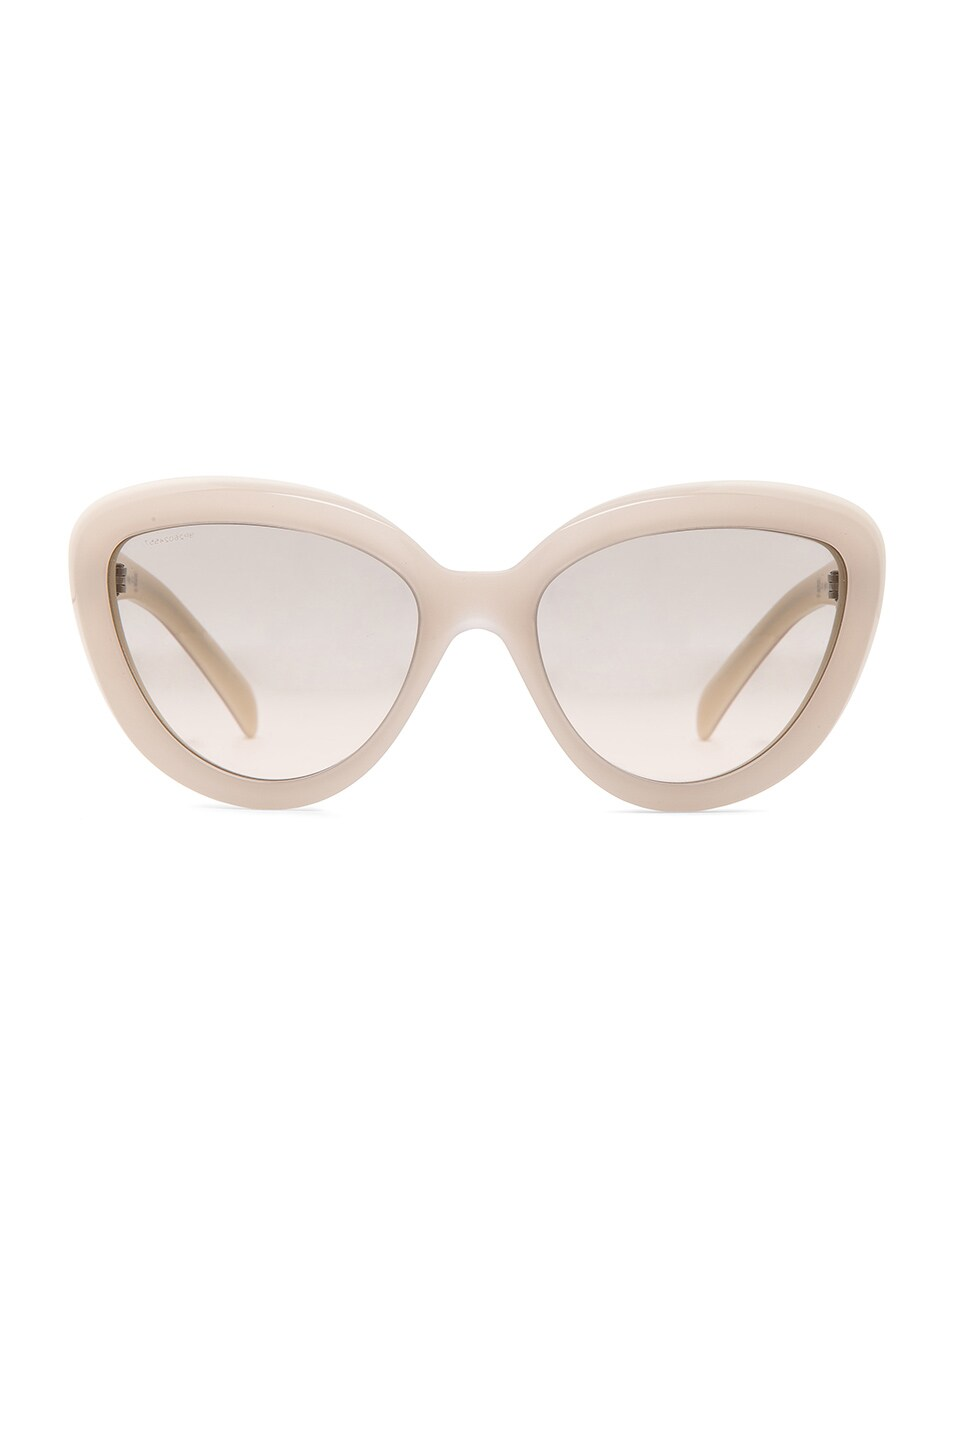 Sunglasses Cat Rounded Eye Prada In IvoryFwrd UMqVSpz